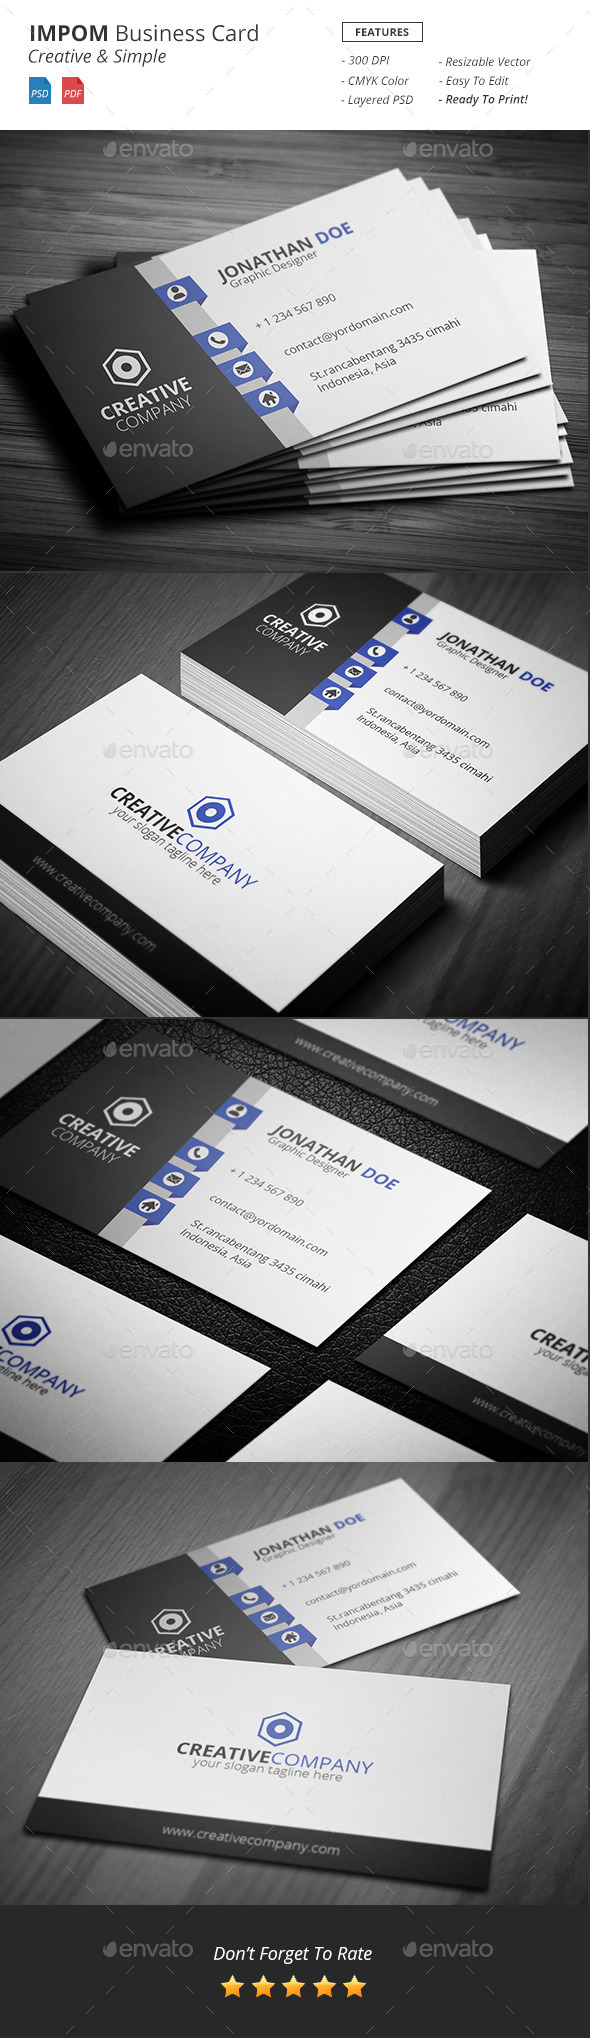 GraphicRiver Impom Business Card 11101017